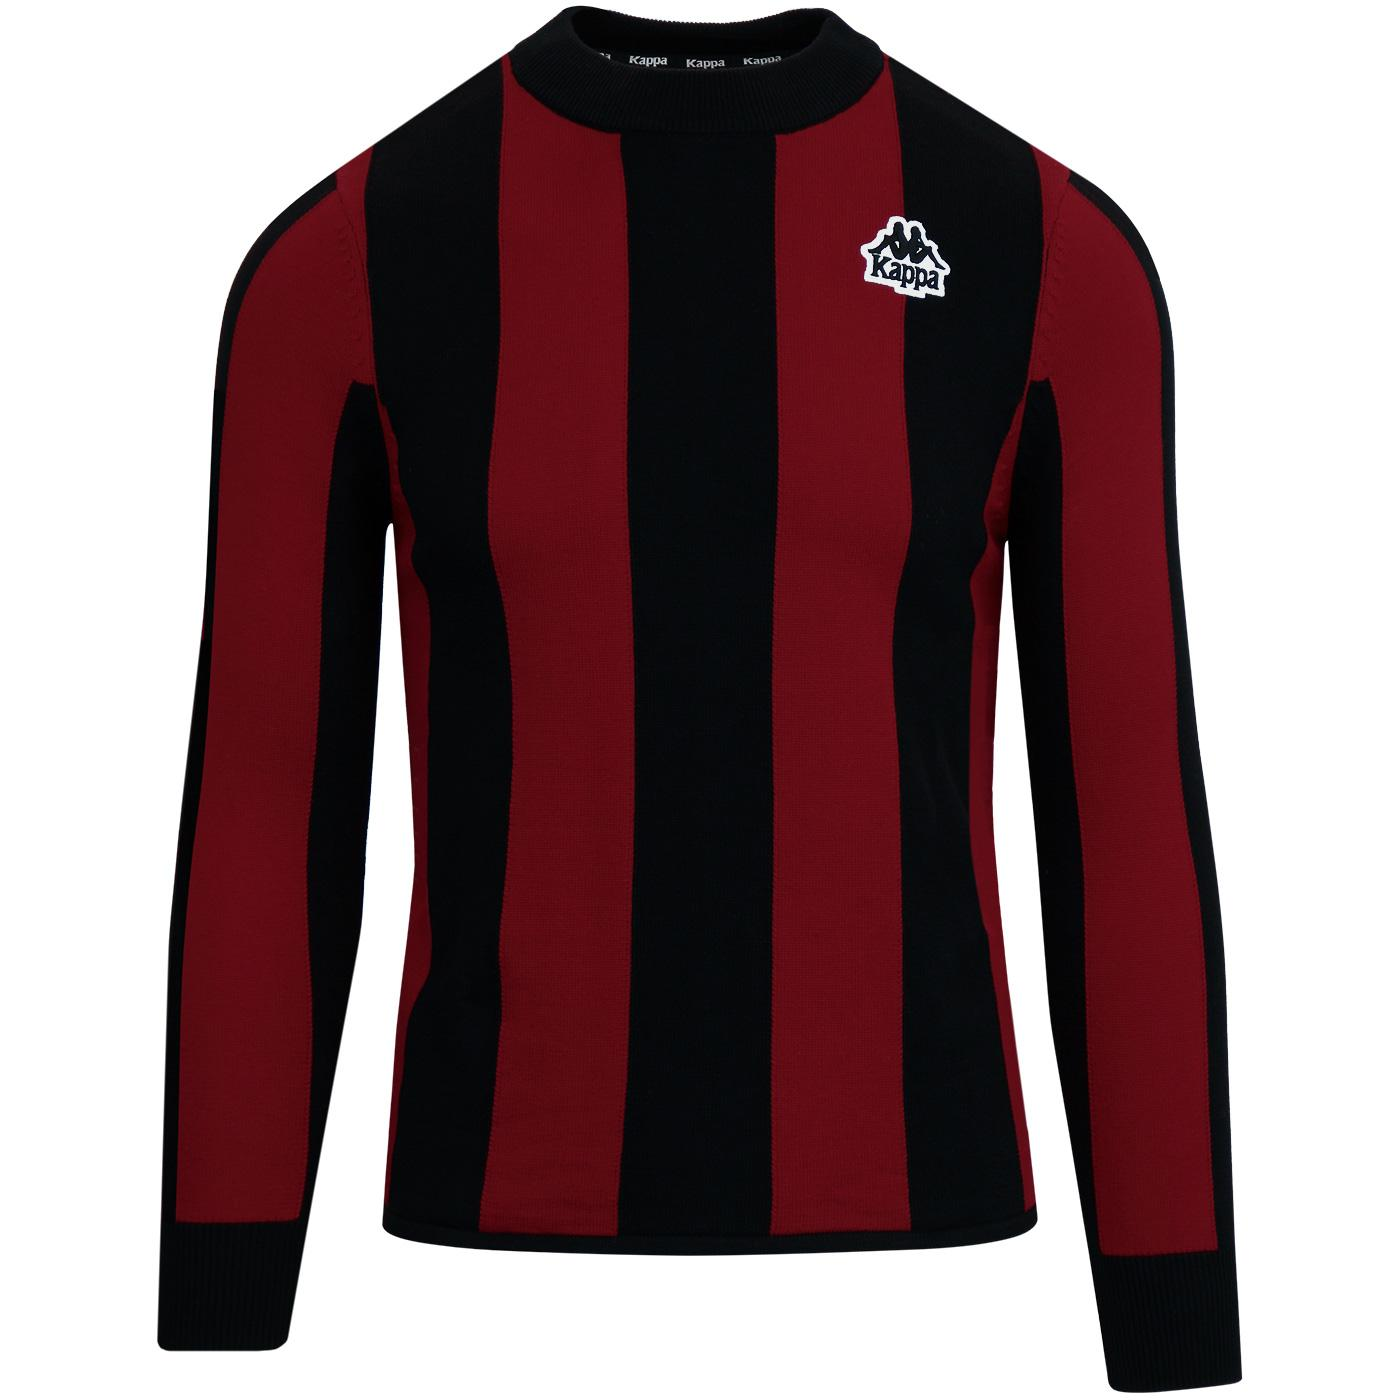 e5a184d6dcaa56 KAPPA Ayrone Retro 80s Football Stripe Jumper in Red/Black